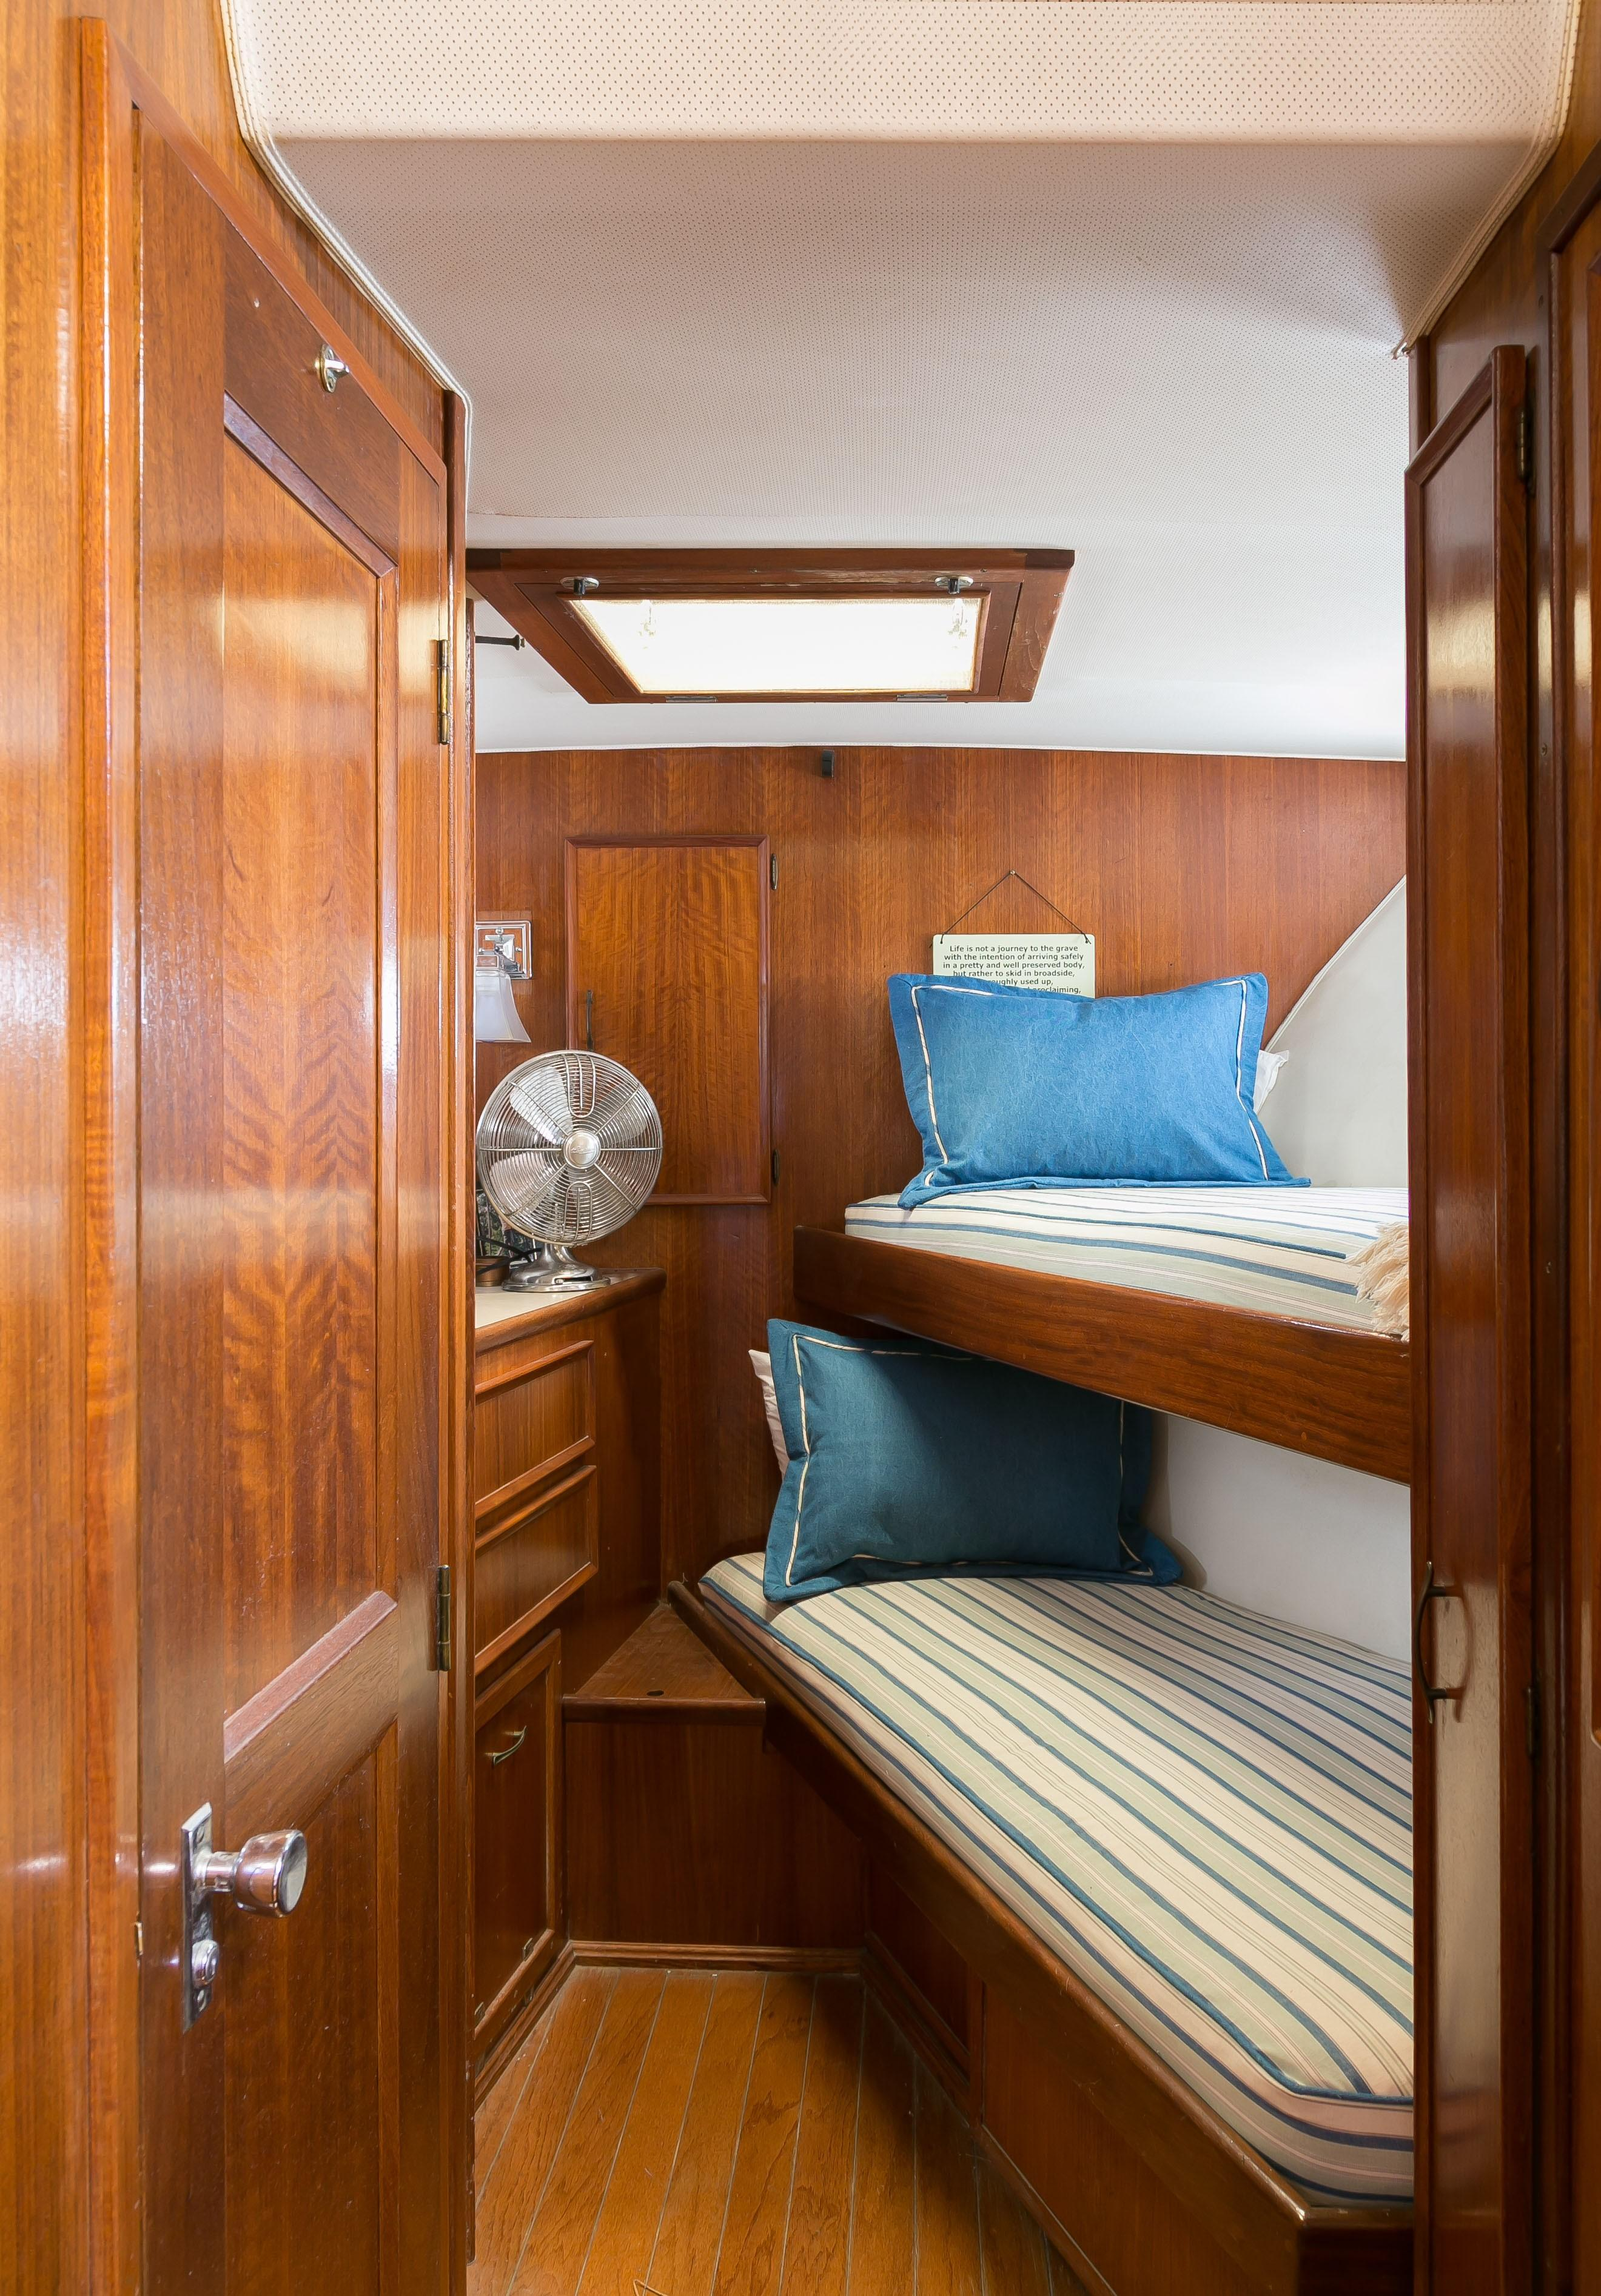 Hatteras 53 Motor Yacht - Forward bunk room